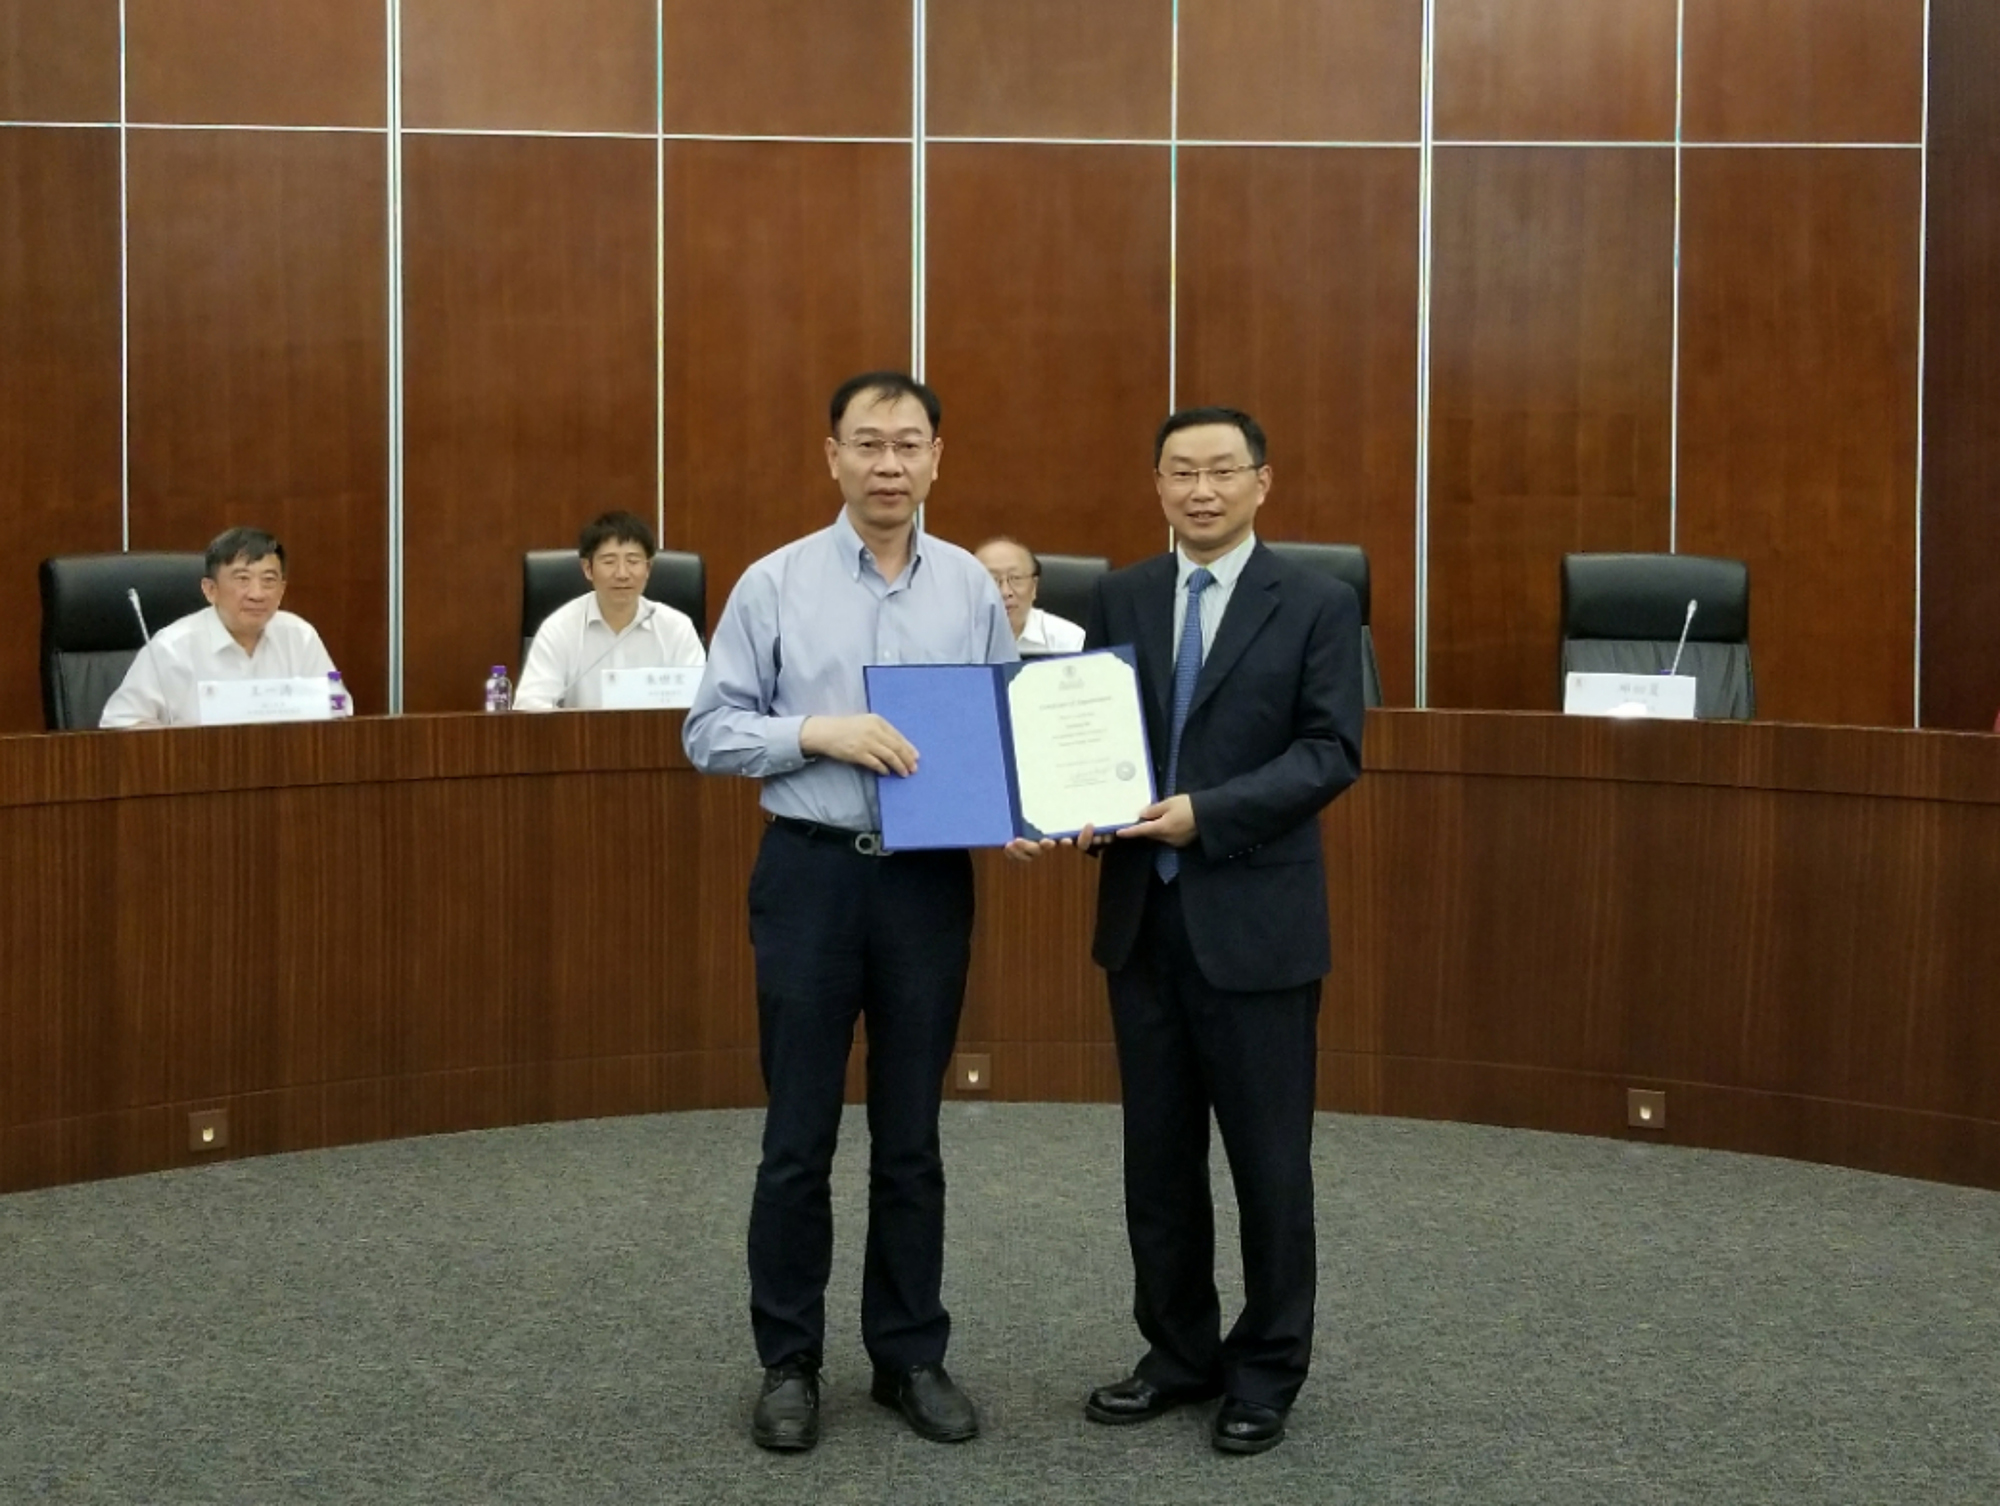 Chuxia Deng presents a certificate of appointment to He Yanzheng.